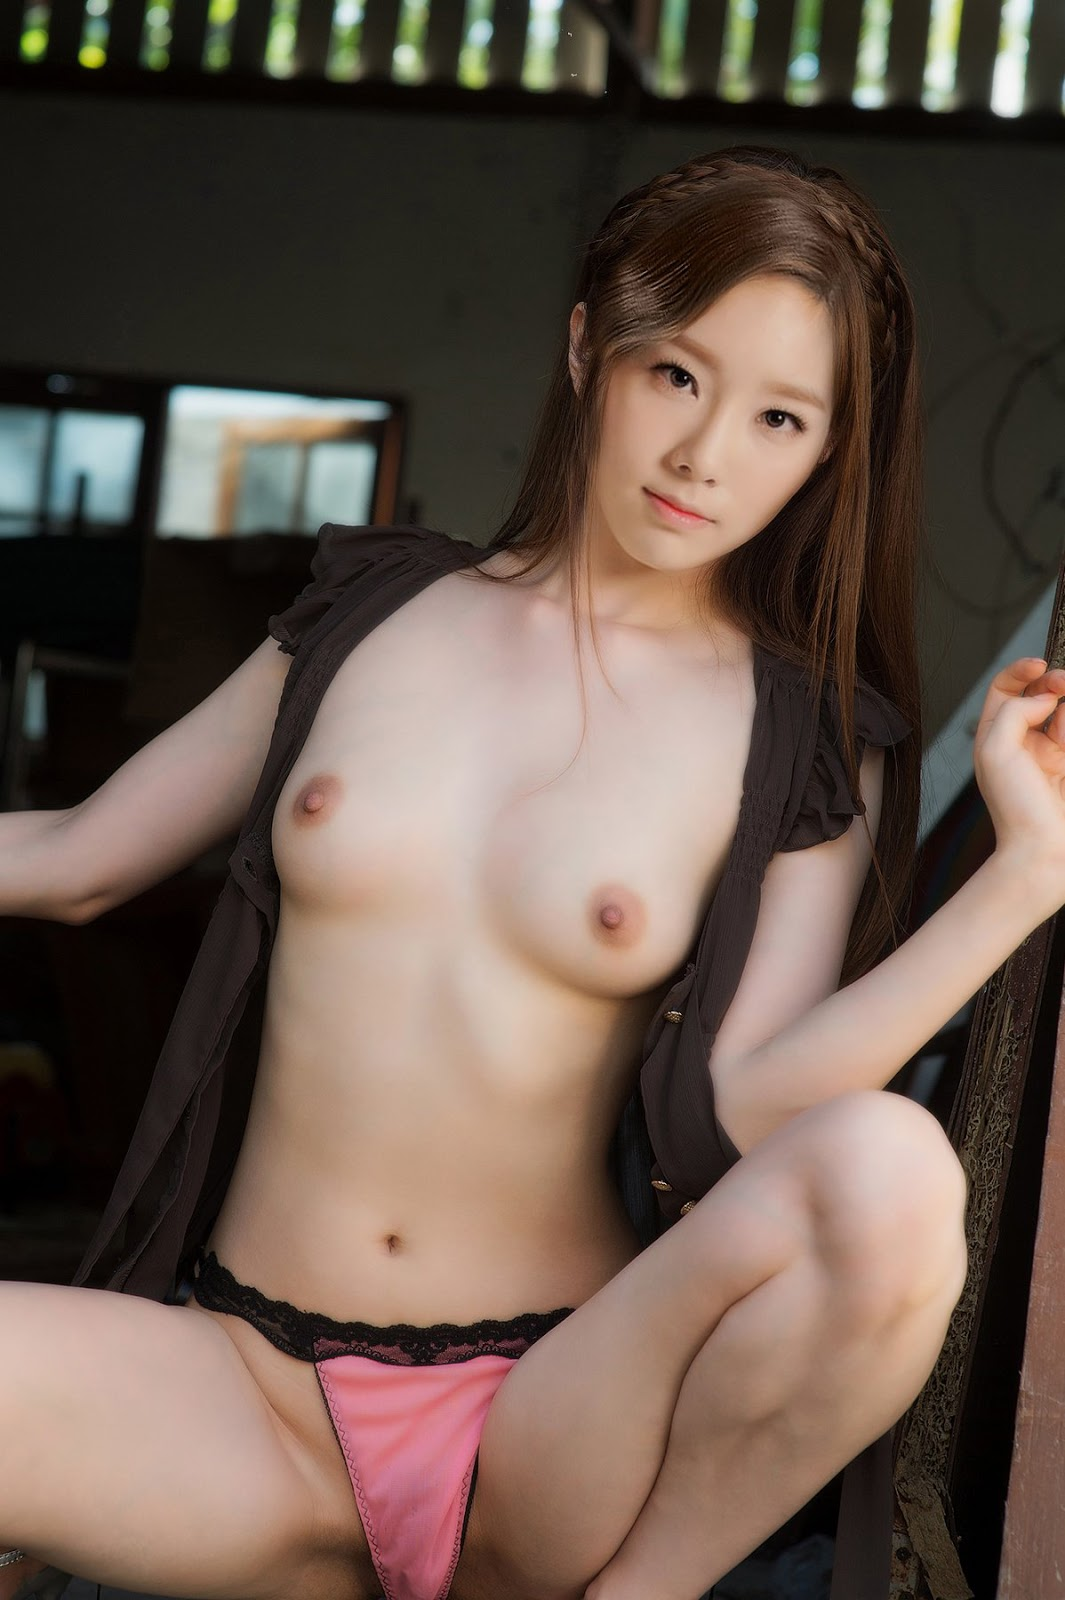 Adult nude japanese women